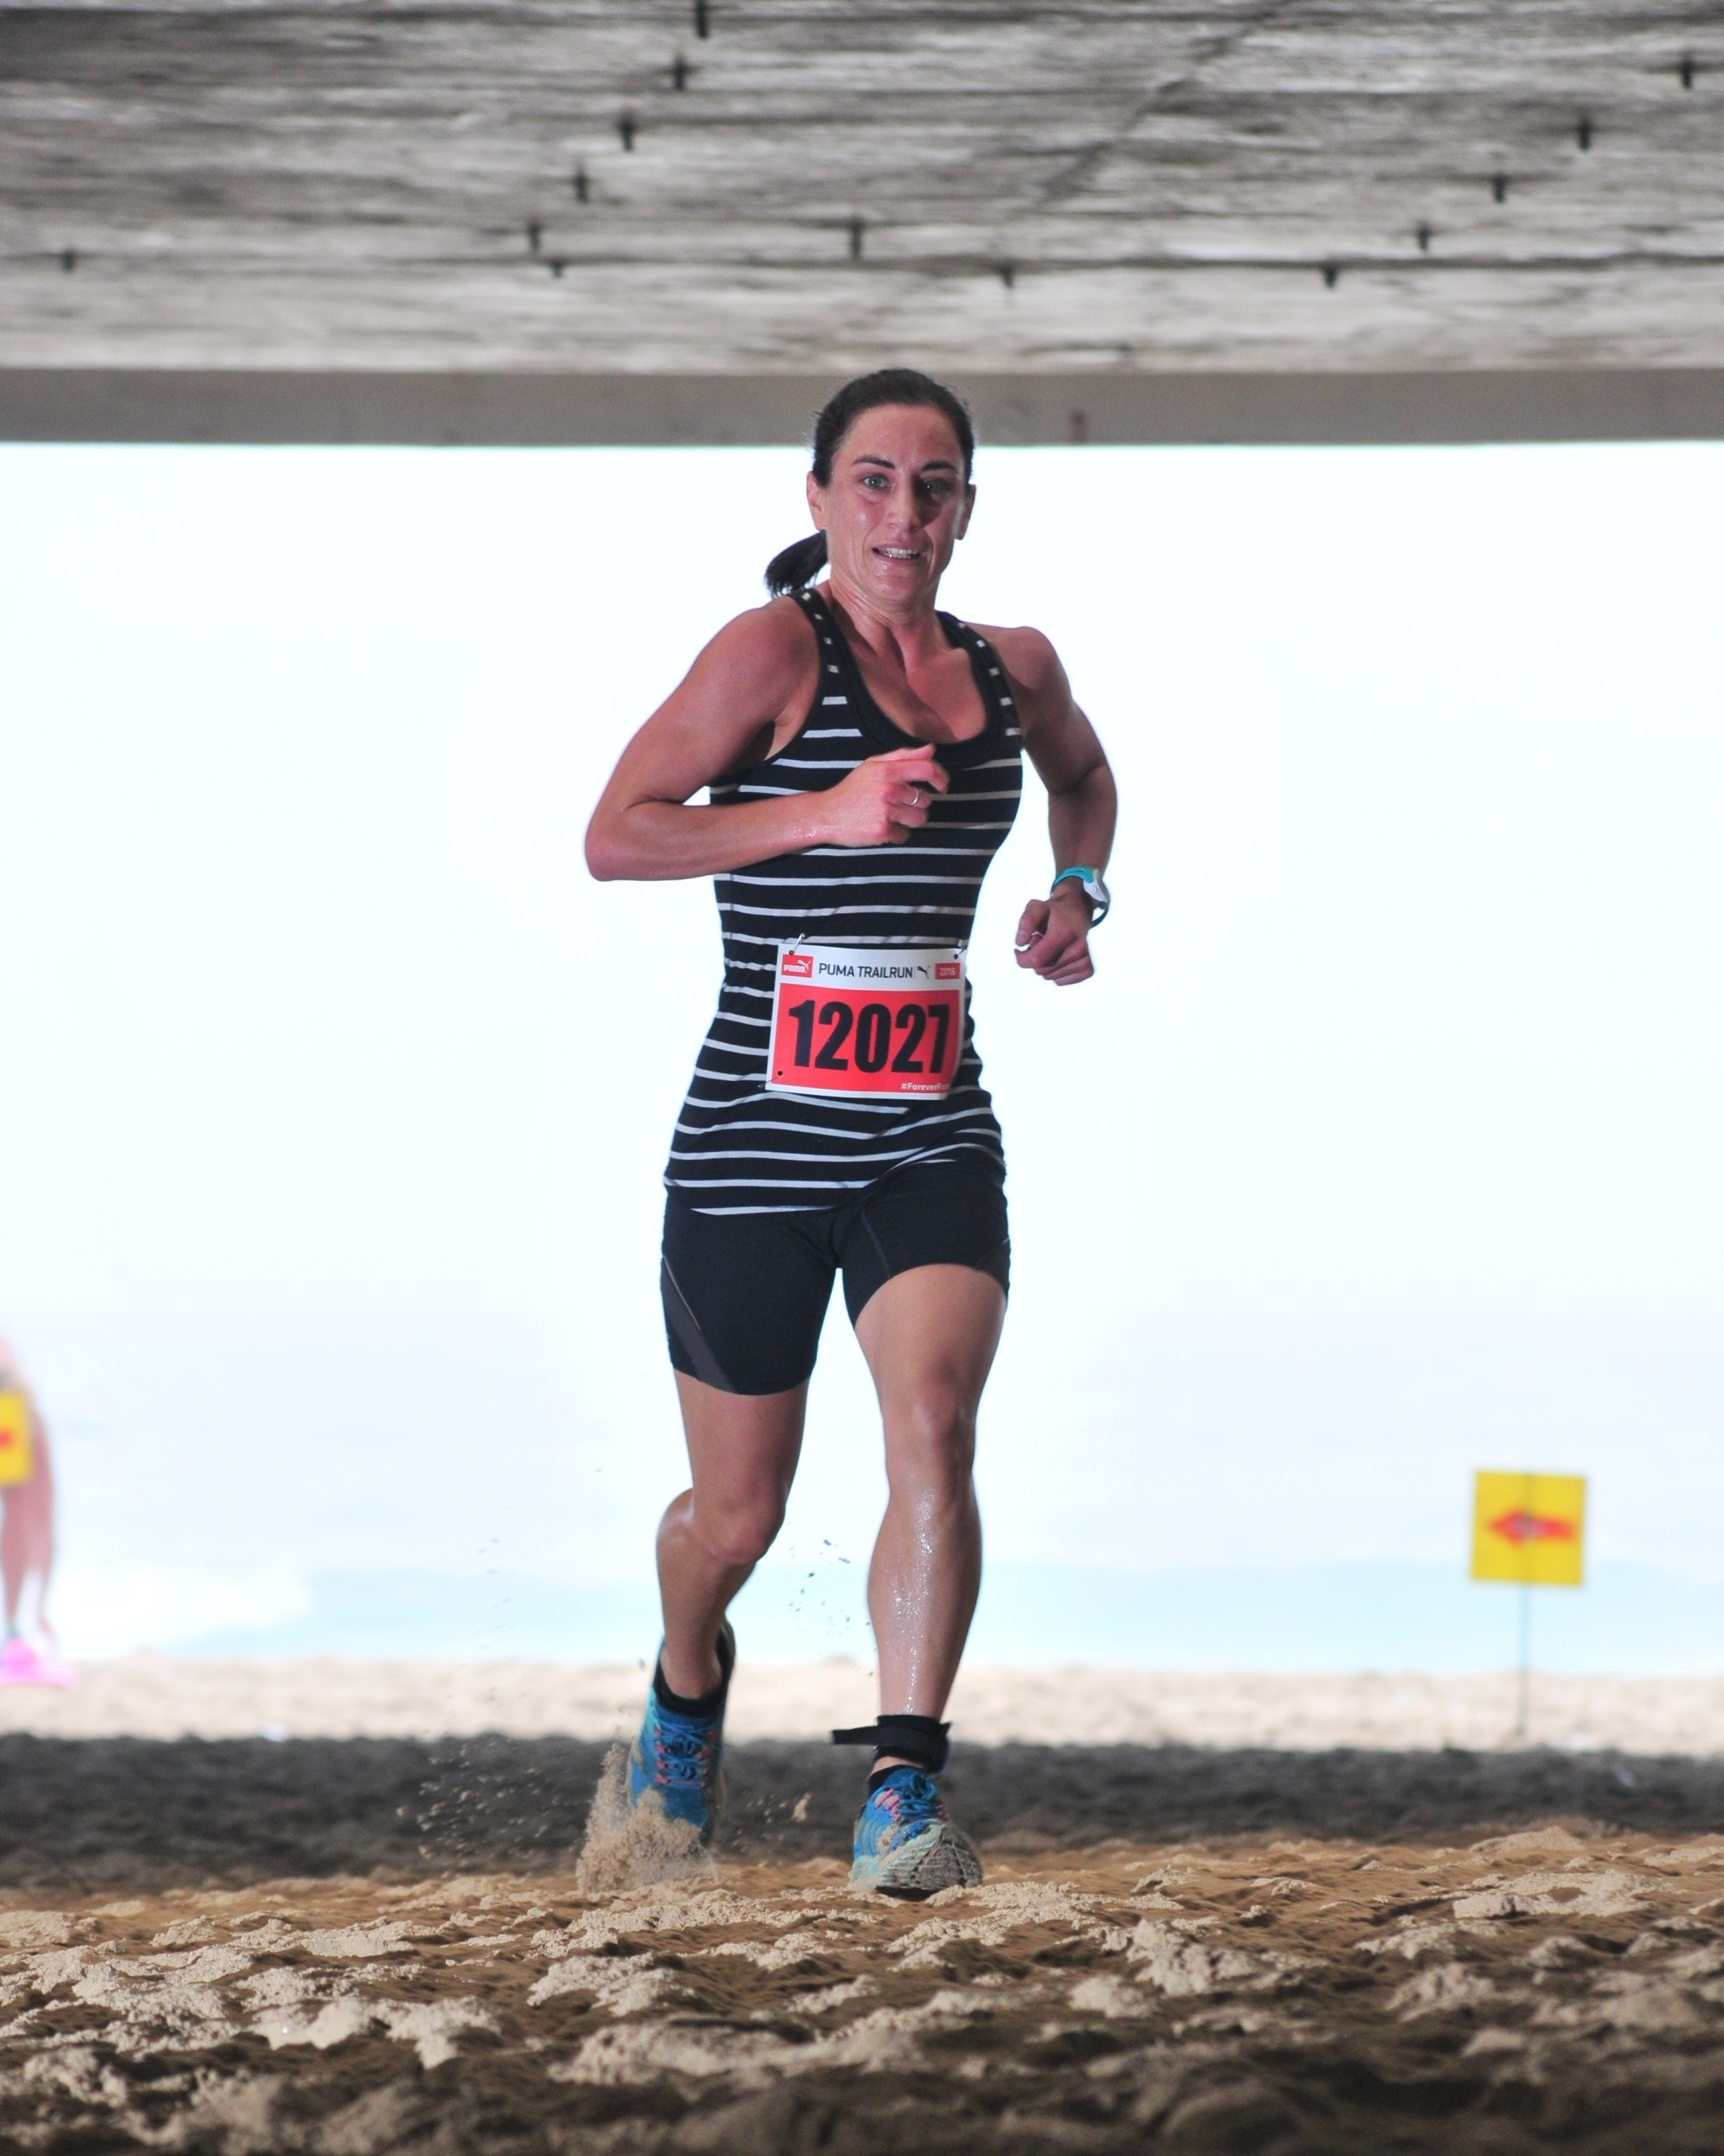 "Calling all trail running, outdoor and fitness enthusiasts!  The XTERRA Trail Run will return to Kings Beach (Nelson Mandela Bay) on Sunday, 12 February 2017. Incorporating the trail run routes of SA's premier off-road triathlon, the Fedhealth XTERRA, entrants can choose between an action-packed 12km and/or 6km route. Alexia Loizou claimed gold in the women's race at the inaugural 12km XTERRA Trail Run in Nelson Mandela Bay in 2016.  ""It's great that XTERRA is now being hosted in Nelson Mandela Bay,"" said Loizou.  ""I entered the XTERRA Trail Run as my road back to XTERRA.  The race was lovely.""   Siyabonga Kahla was the athlete to beat in the men's 6km XTERRA Trail Run in Nelson Mandela Bay.  ""Myuyisi Gcogco and I decided to take part in the XTERRA Trail Run,"" said Kahla.  ""We run for Free Spirit Adventures.  Myuyisi came first in the 12km race.   The 6km route was well marked.  I really enjoyed the race.""  2017 EVENT DATES:  XTERRA Trail Run Nelson Mandela Bay (Port Elizabeth) Date:Sunday, 12 February 2017 Venue:	Kings Beach Distance, Entry Fee & Description:	Distance:  12km  	Entry Fee:  R180 	Description:  This route will start and finish with a beautiful beach run.  Happy Valley's trail variety is sure to impress.  Expect some tarred sections, but mostly hard-packed single and jeep tracks with some sandy sections.  Entrants will do two laps in Happy Valley. 	 	Distance:  6km  	Entry Fee:  R120 	Description:  This route is the same as the 12km route, but entrants will only do one lap. Follow us on Twitter:  @StillwaterTrail Like our FaceBook page:  Stillwater Trail Running For further information or to enter the XTERRA Trail Run contact Stillwater Sports on 082 991 0045, email entries@stillwatersports.com or visit www.stillwatersports.com"